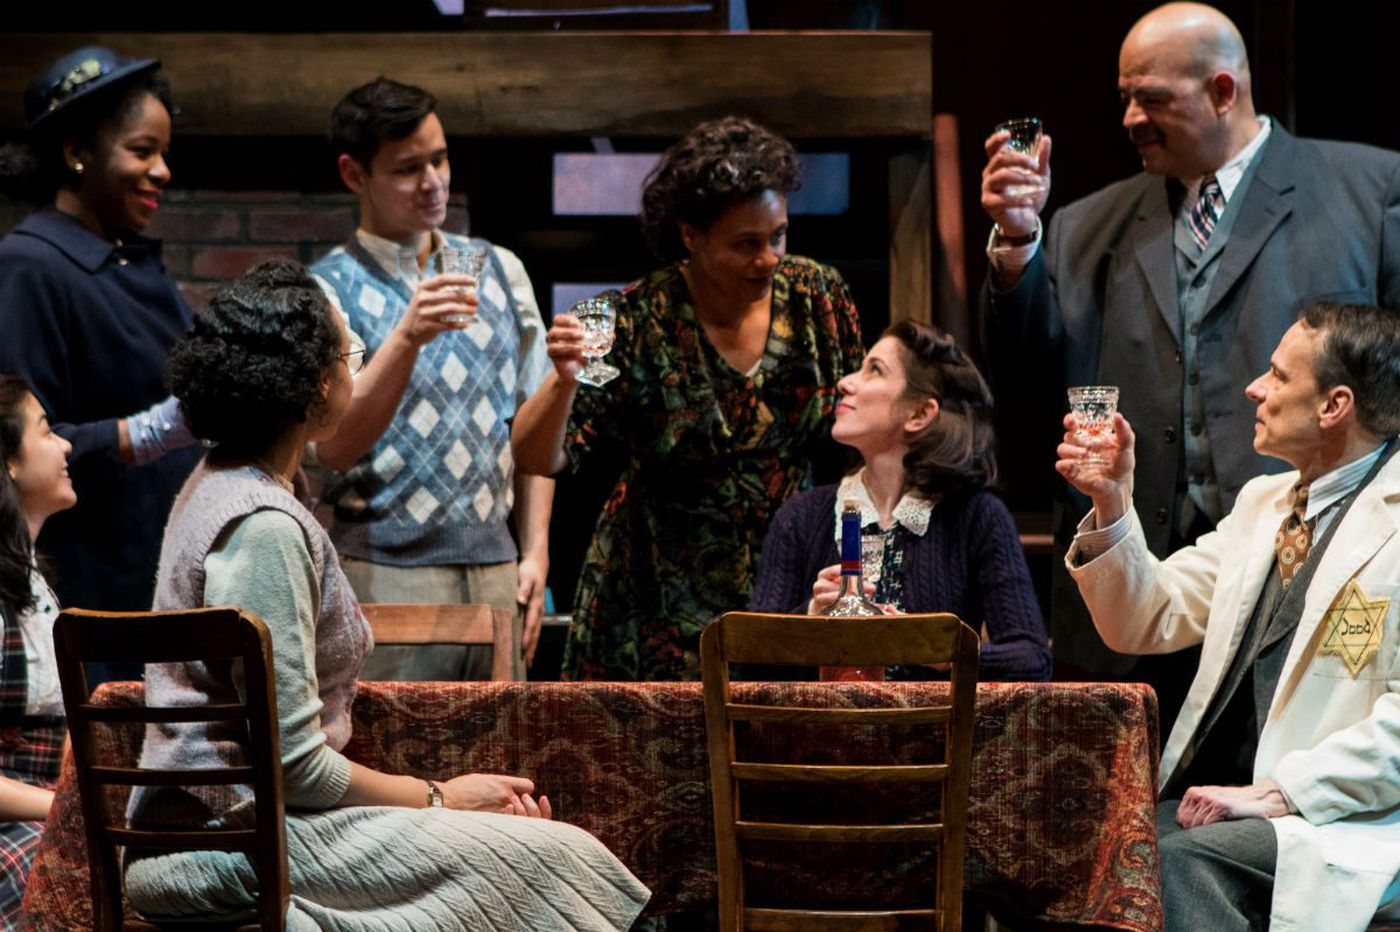 'Diary of Anne Frank' at People's Light: A girl grows up, and horror descends